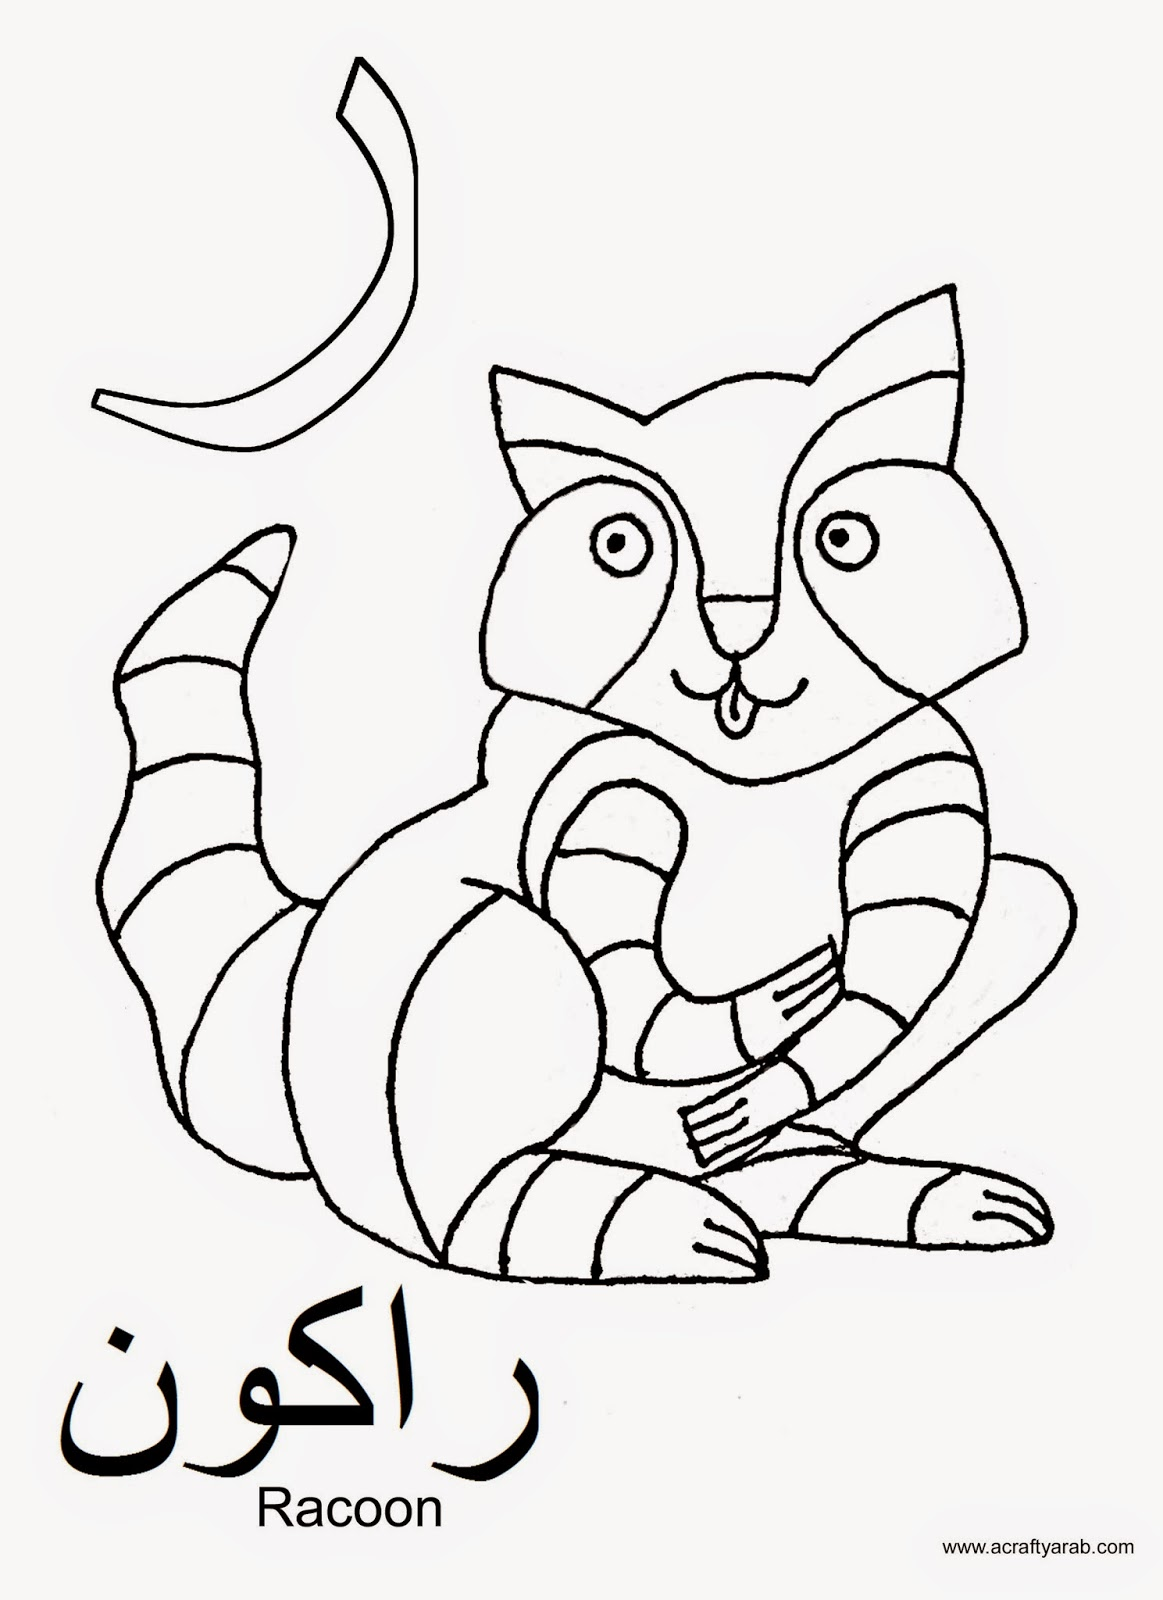 A Crafty Arab: Arabic Alphabet coloring pages...Ra is for